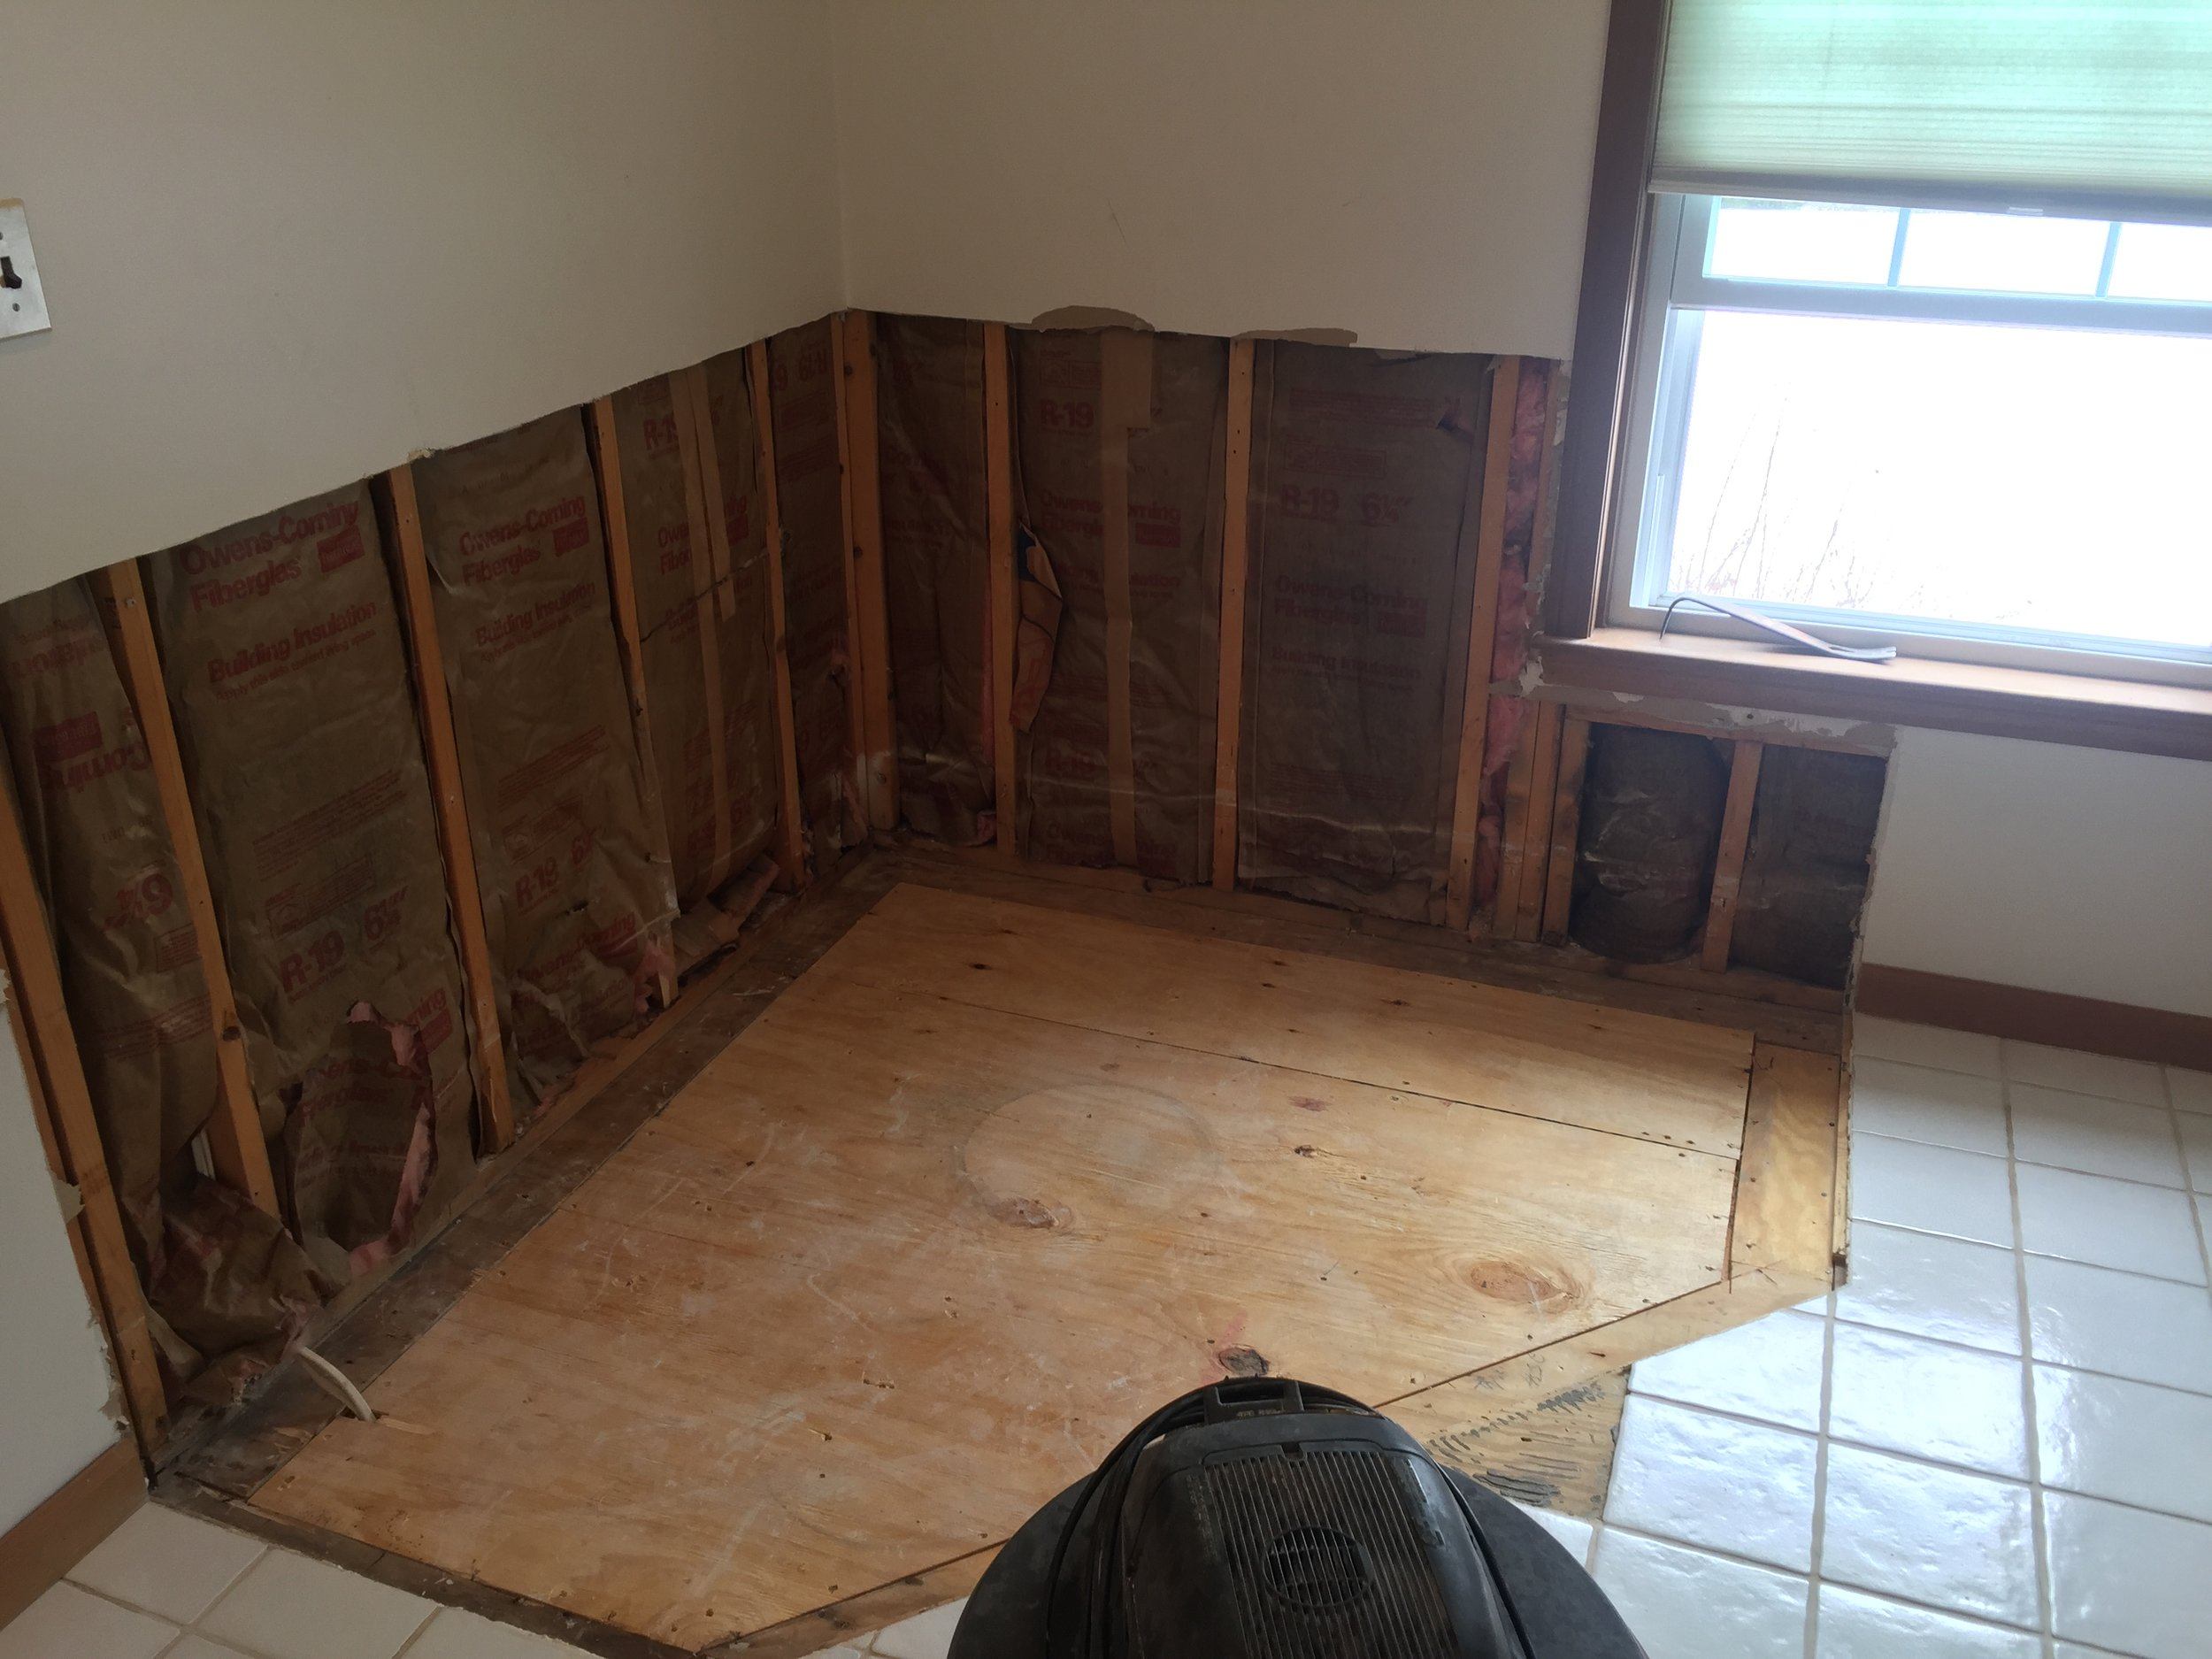 Plywood Subflooring Installed with new floor joists below